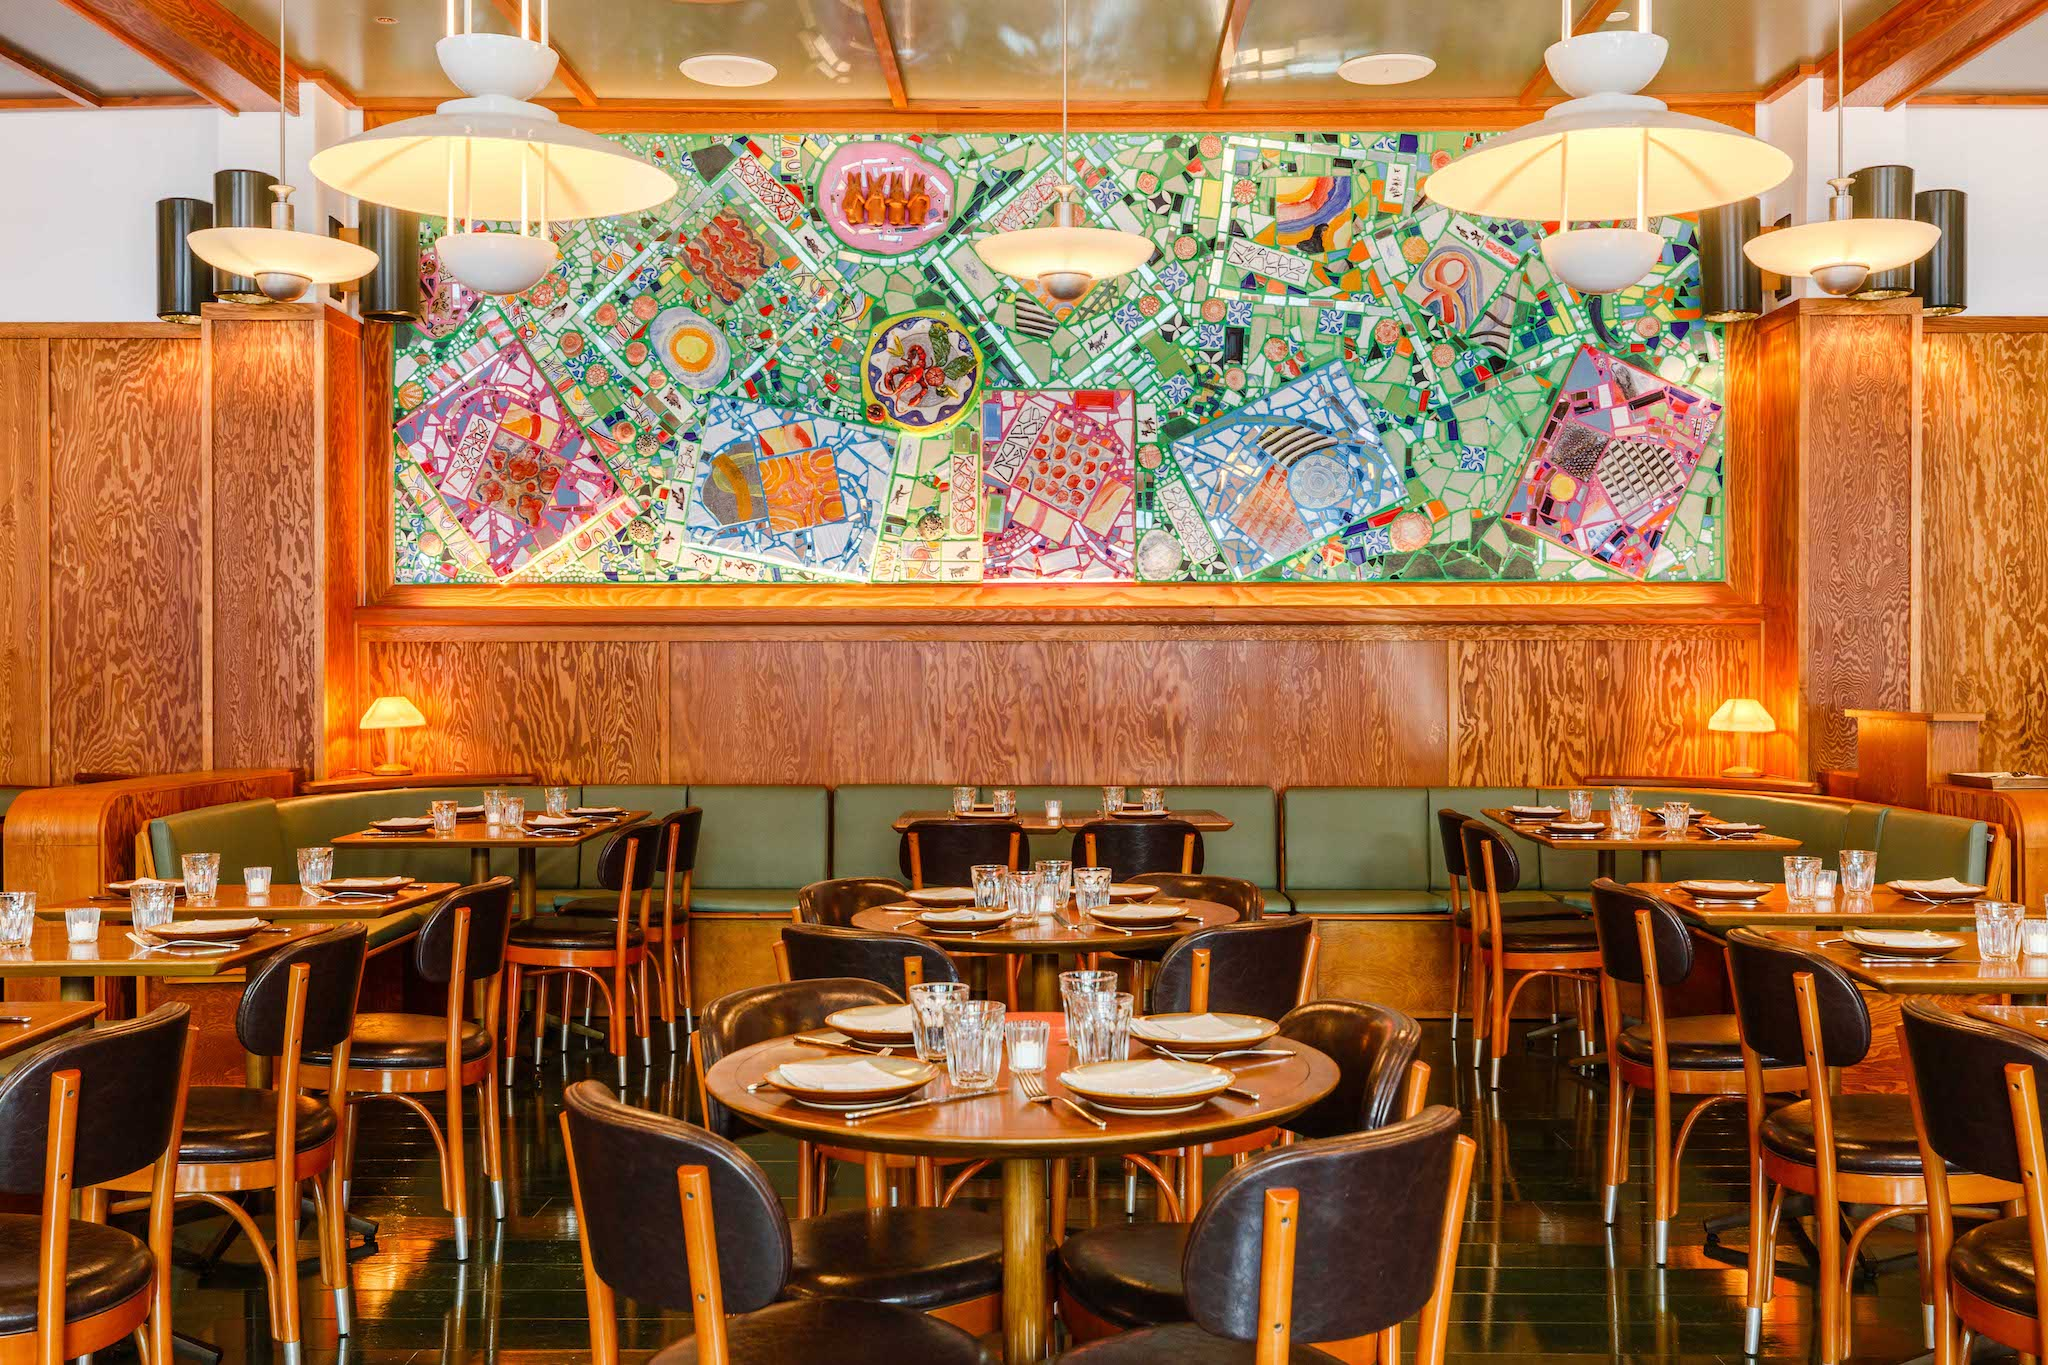 A dining room filled with wooden tables and chairs and a view of a colorful painting.